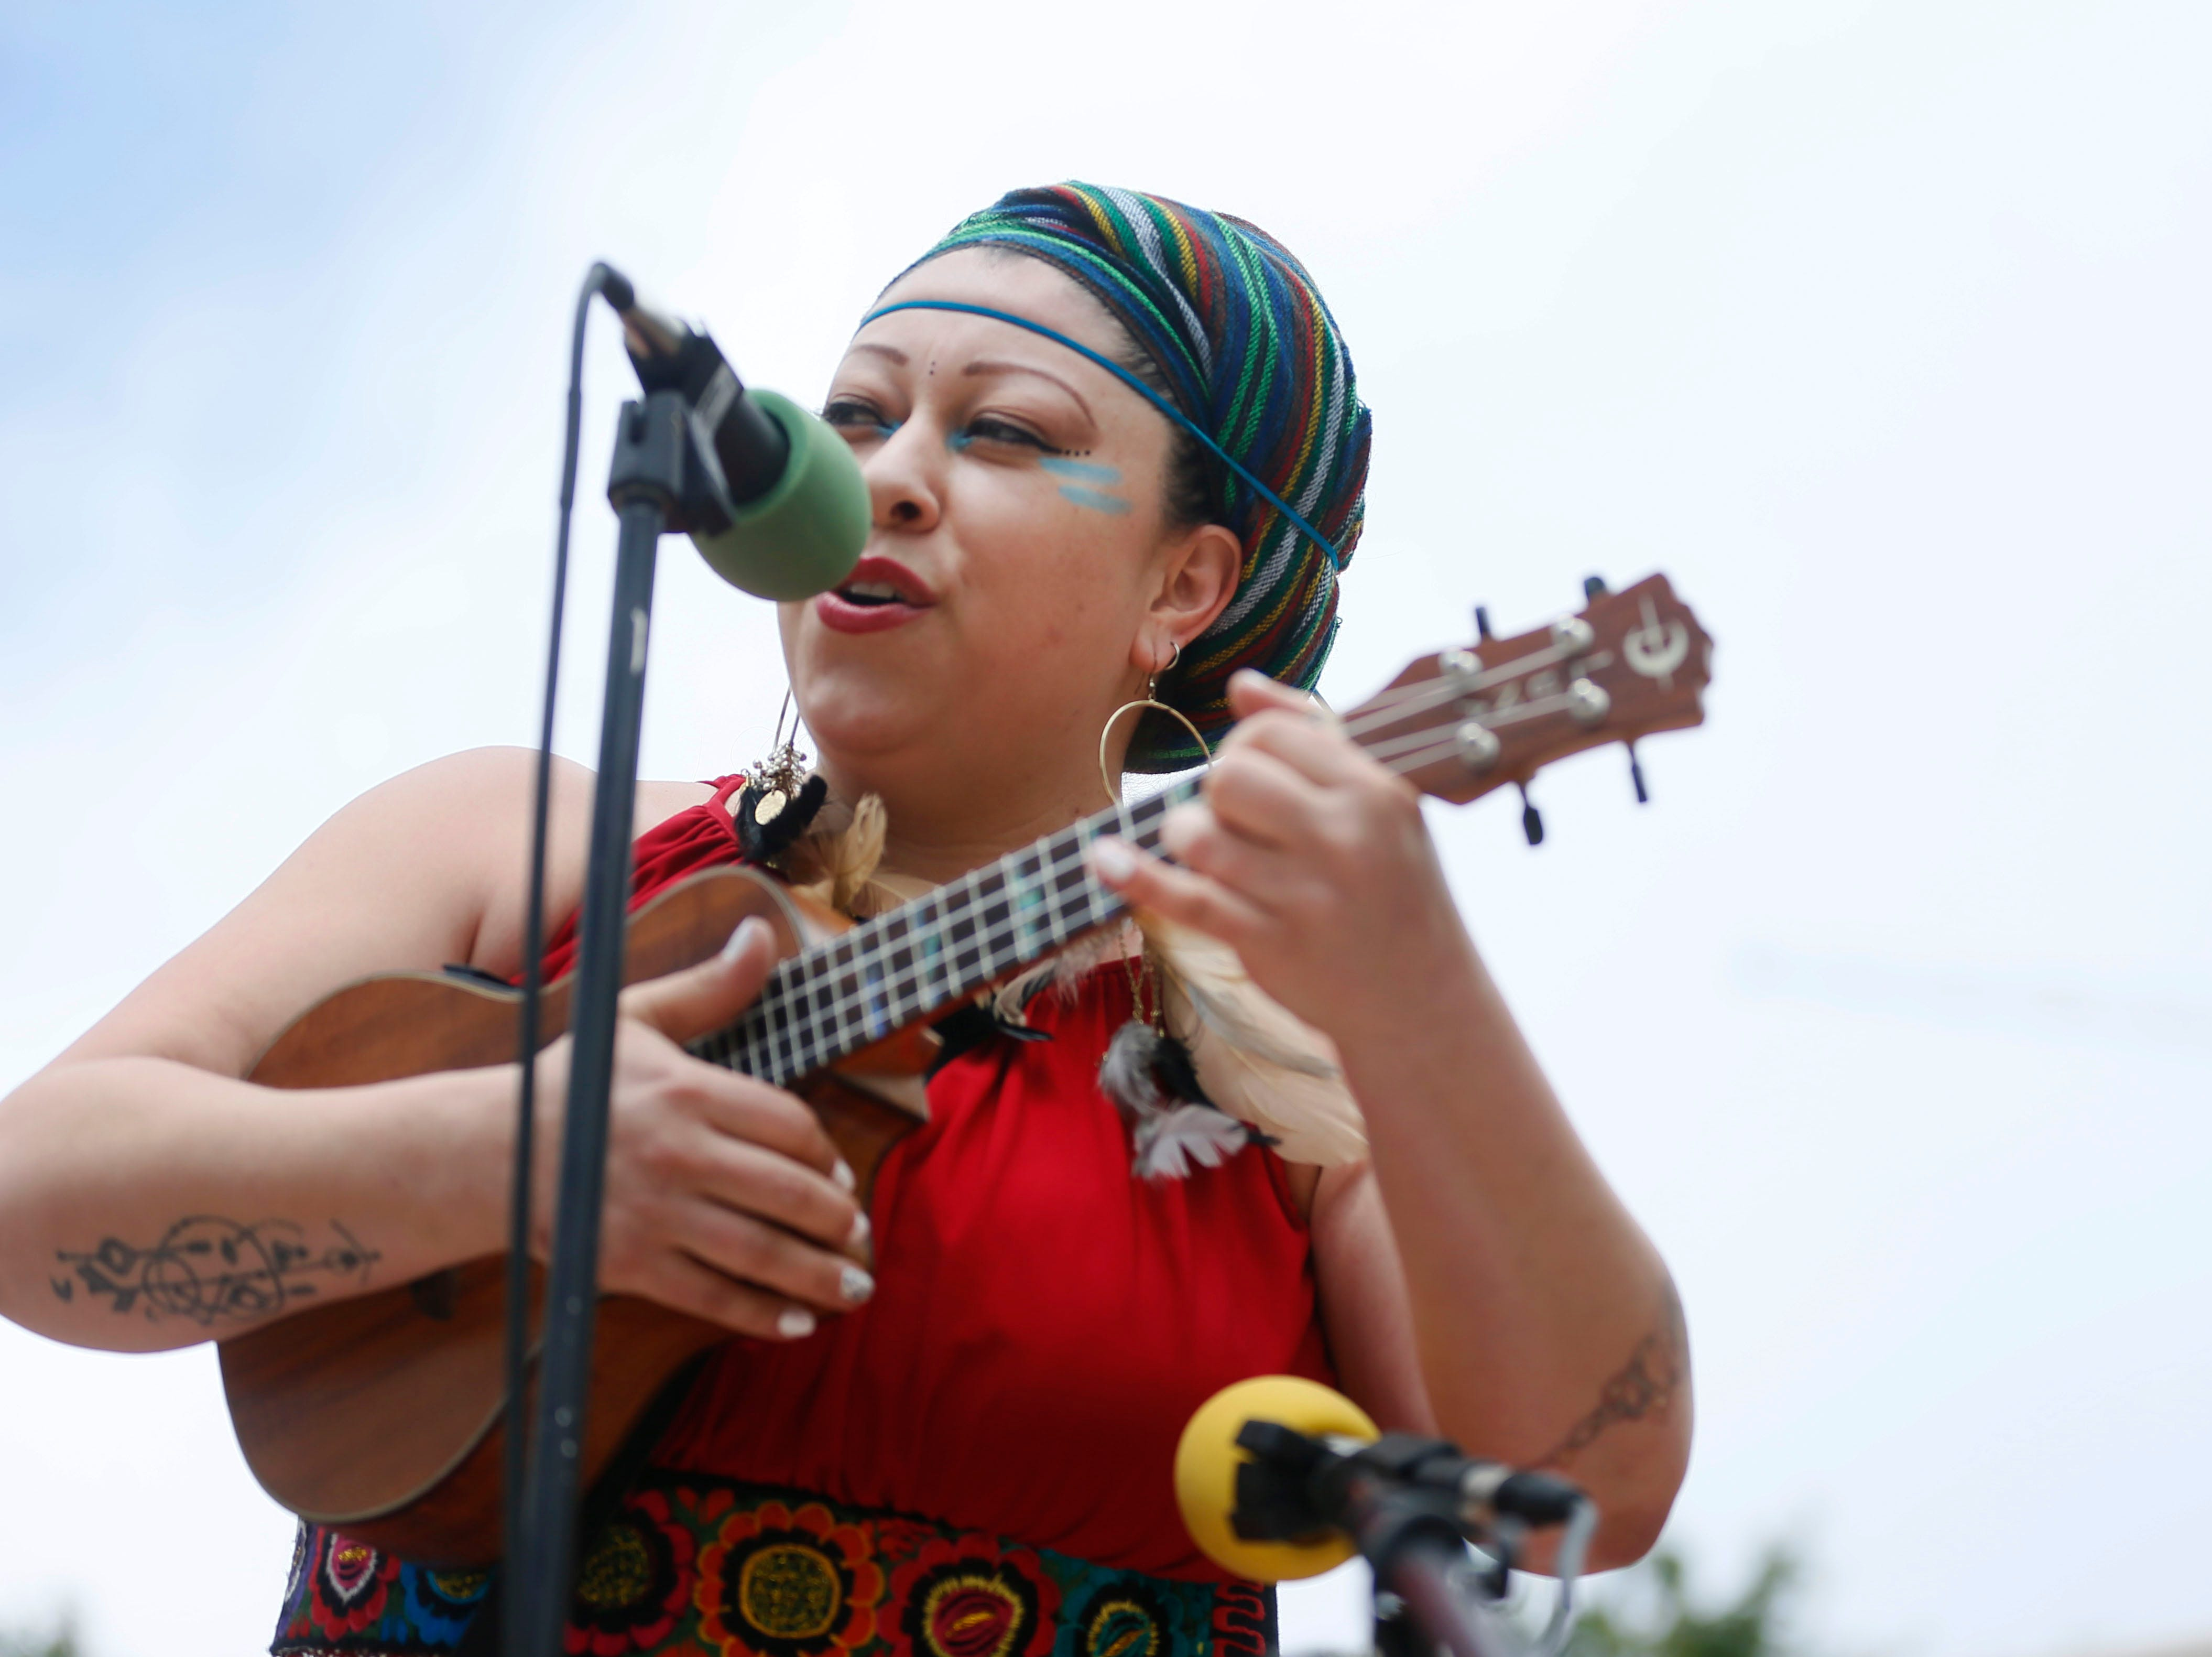 Shaka Took performs during the Coalition to End Child Detention - El Paso rally Sunday, May 12, to end family separation and child detention. Angelica Tinajero and her sister Betsy Tinajero, not pictured, performed several songs during the rally.